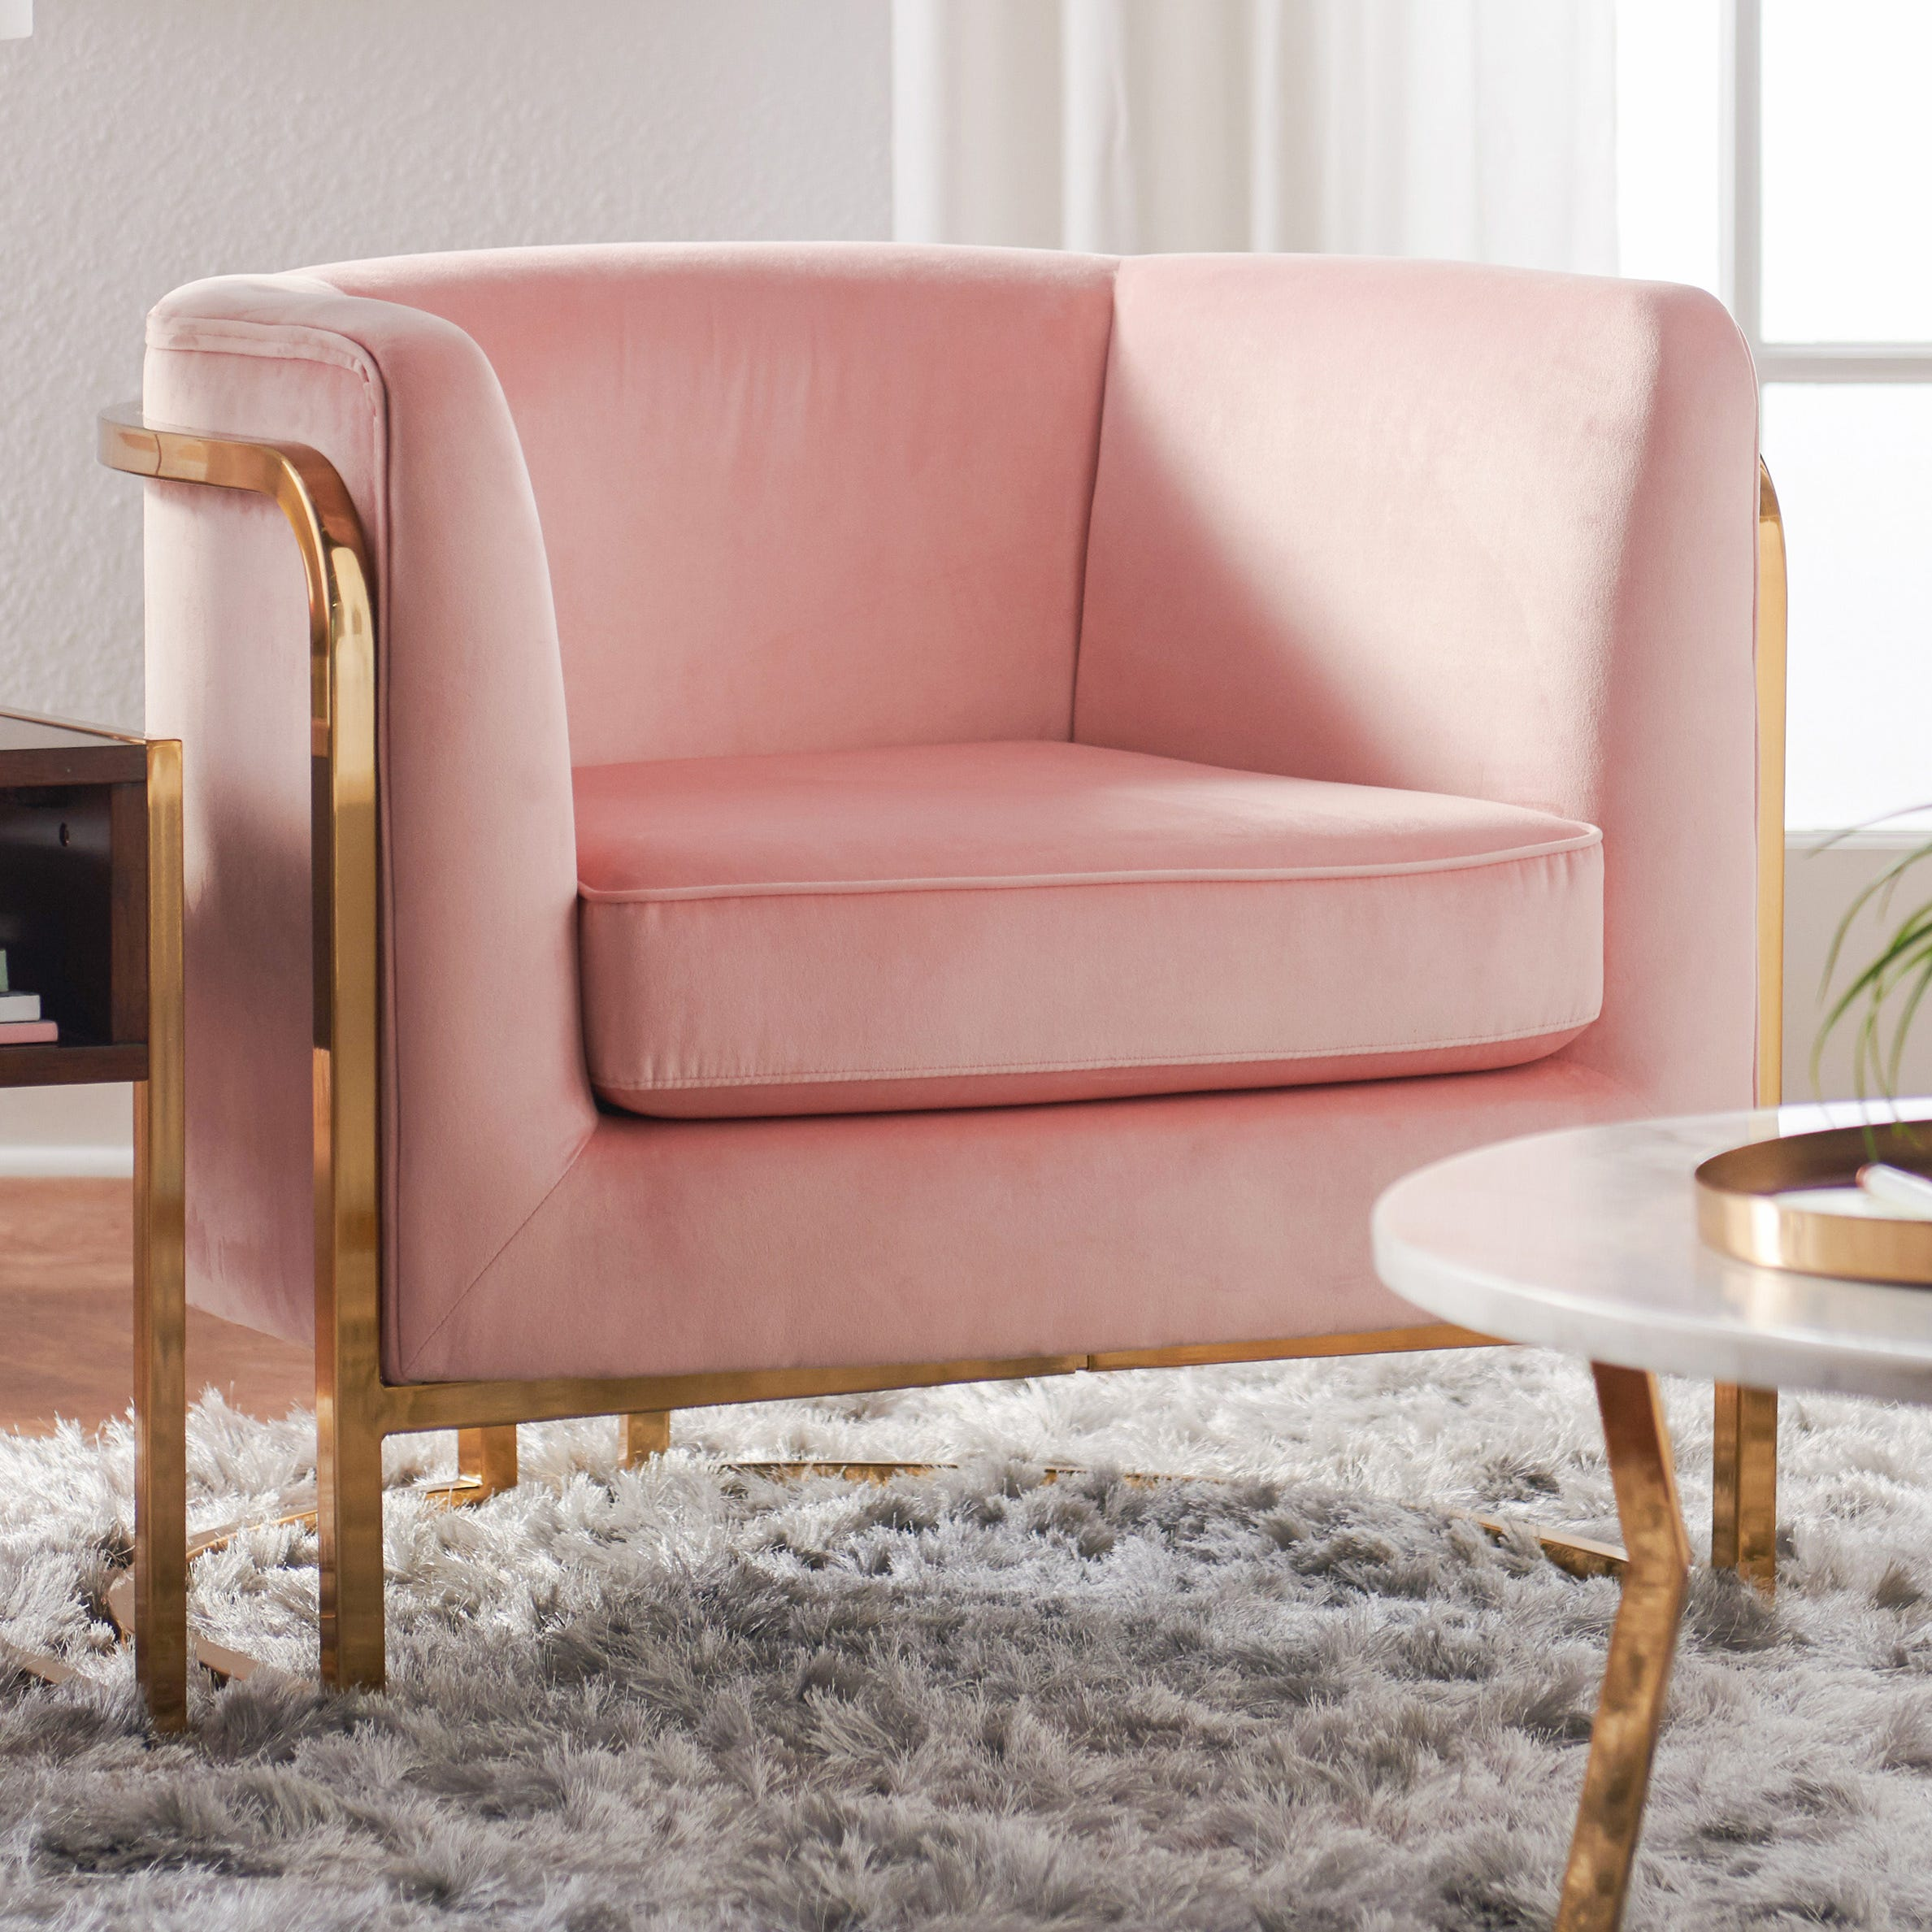 Walmart's new furniture line will blow your mind.